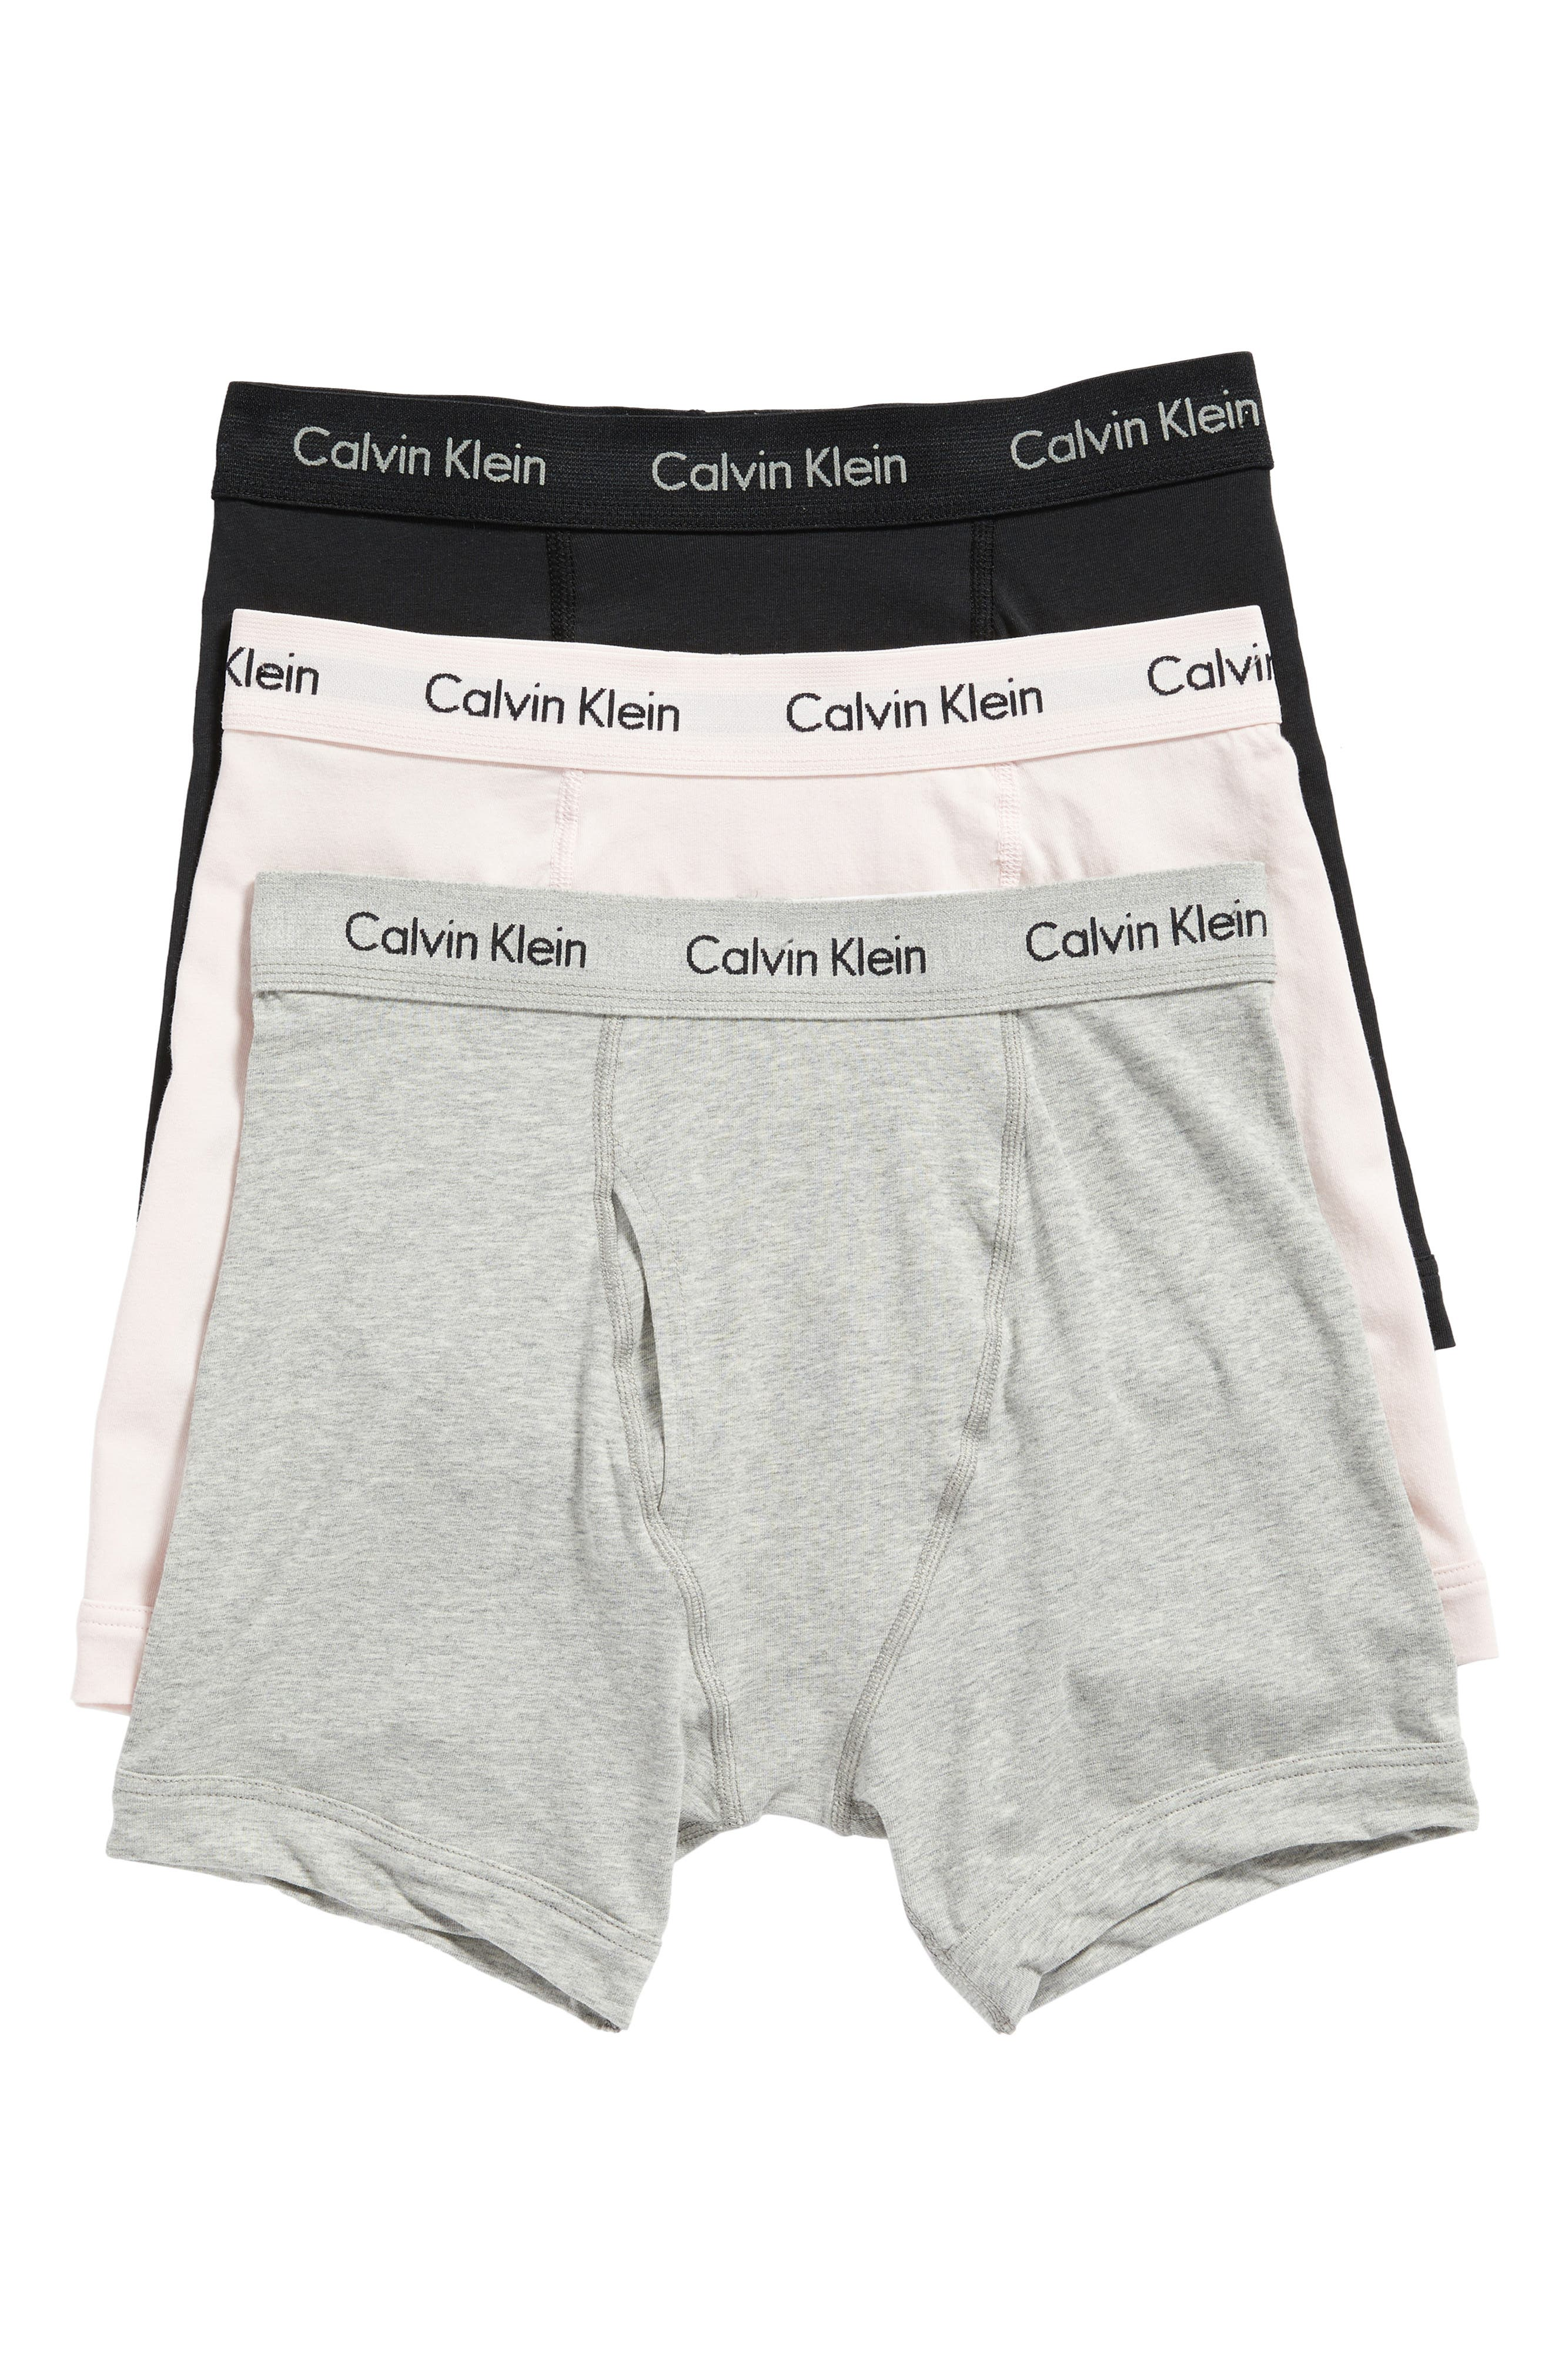 3-Pack Boxer Briefs,                         Main,                         color, Black/ Grey/ Nymph Thigh